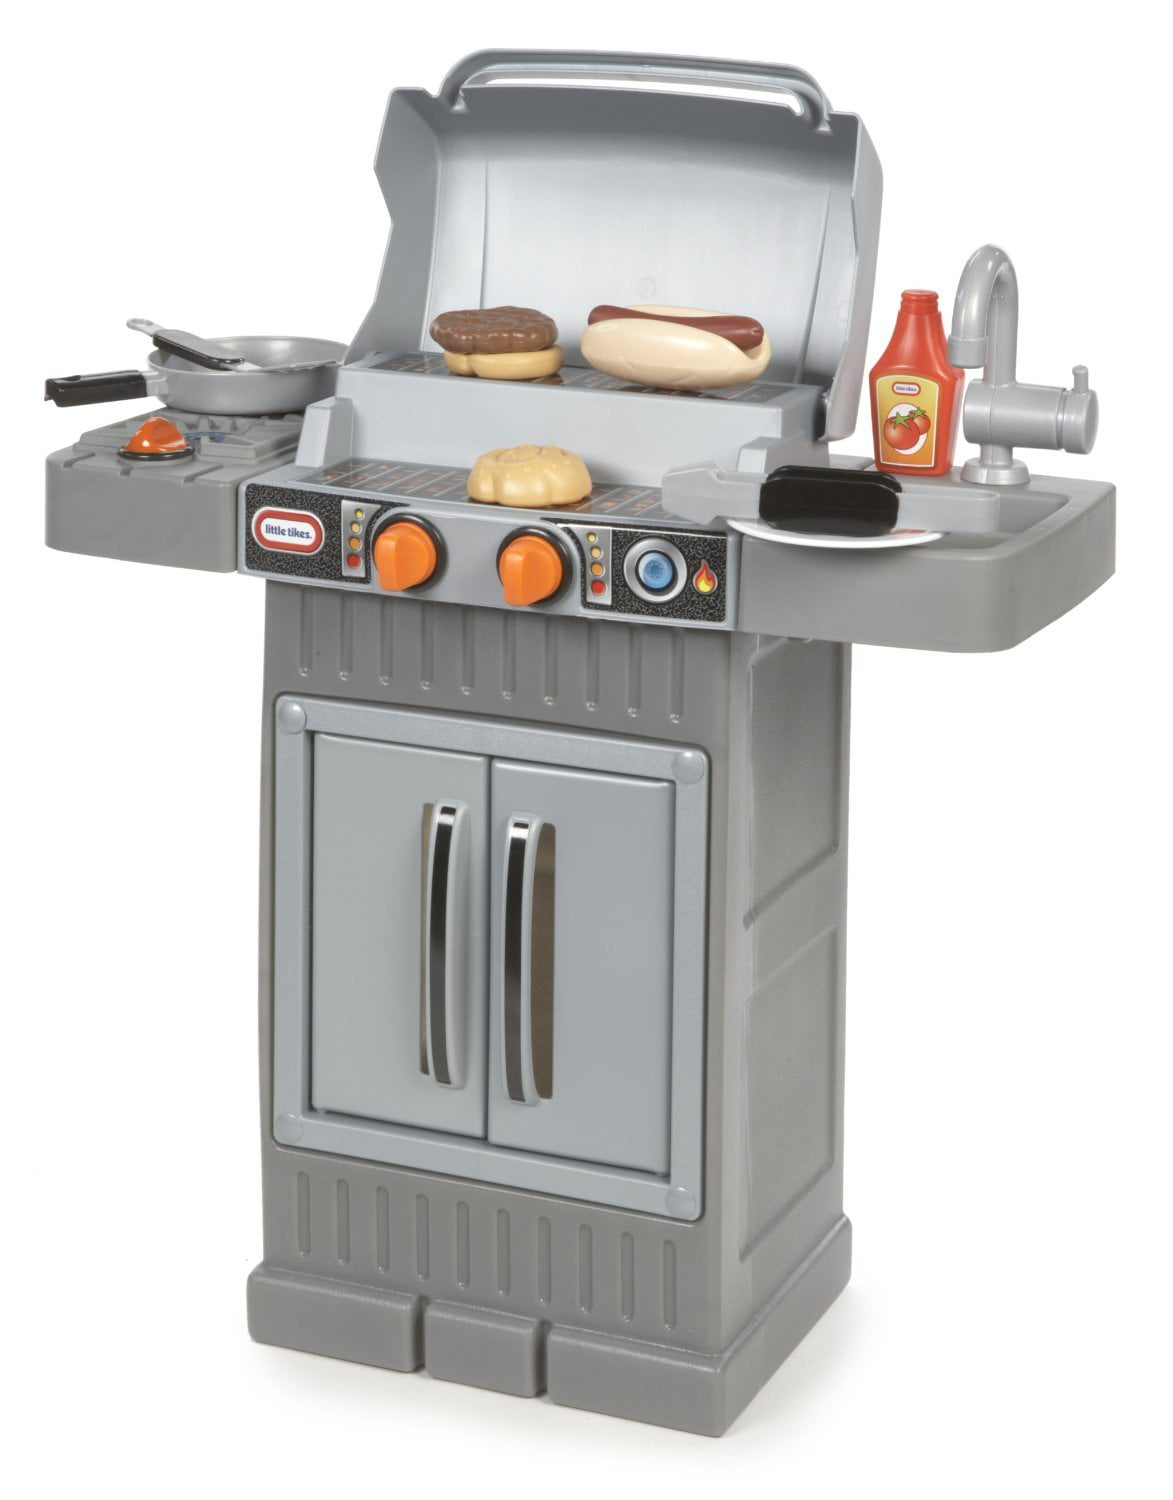 Little Tikes Cook N Grow Bbq Grill With Cooking Accessories And Play Food Walmart Com Walmart Com